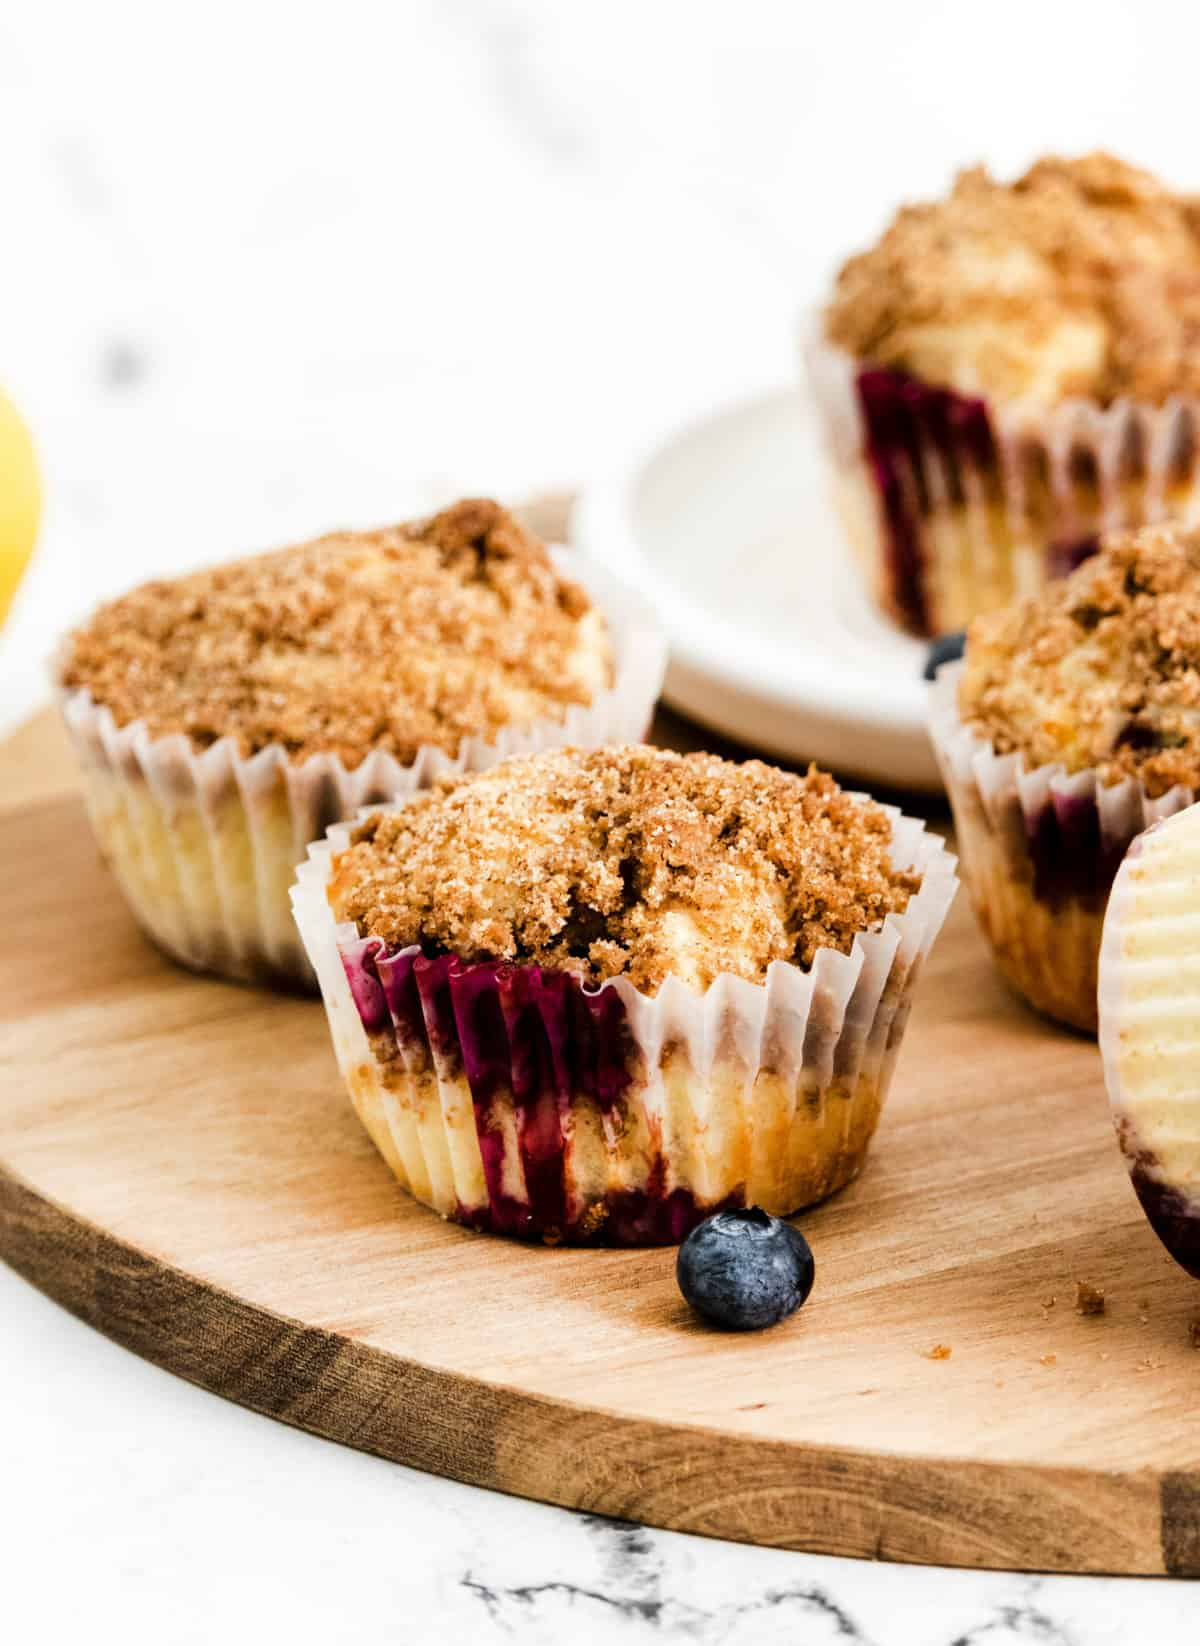 Lemon Blueberry Muffins on wooden platter showing side of muffins